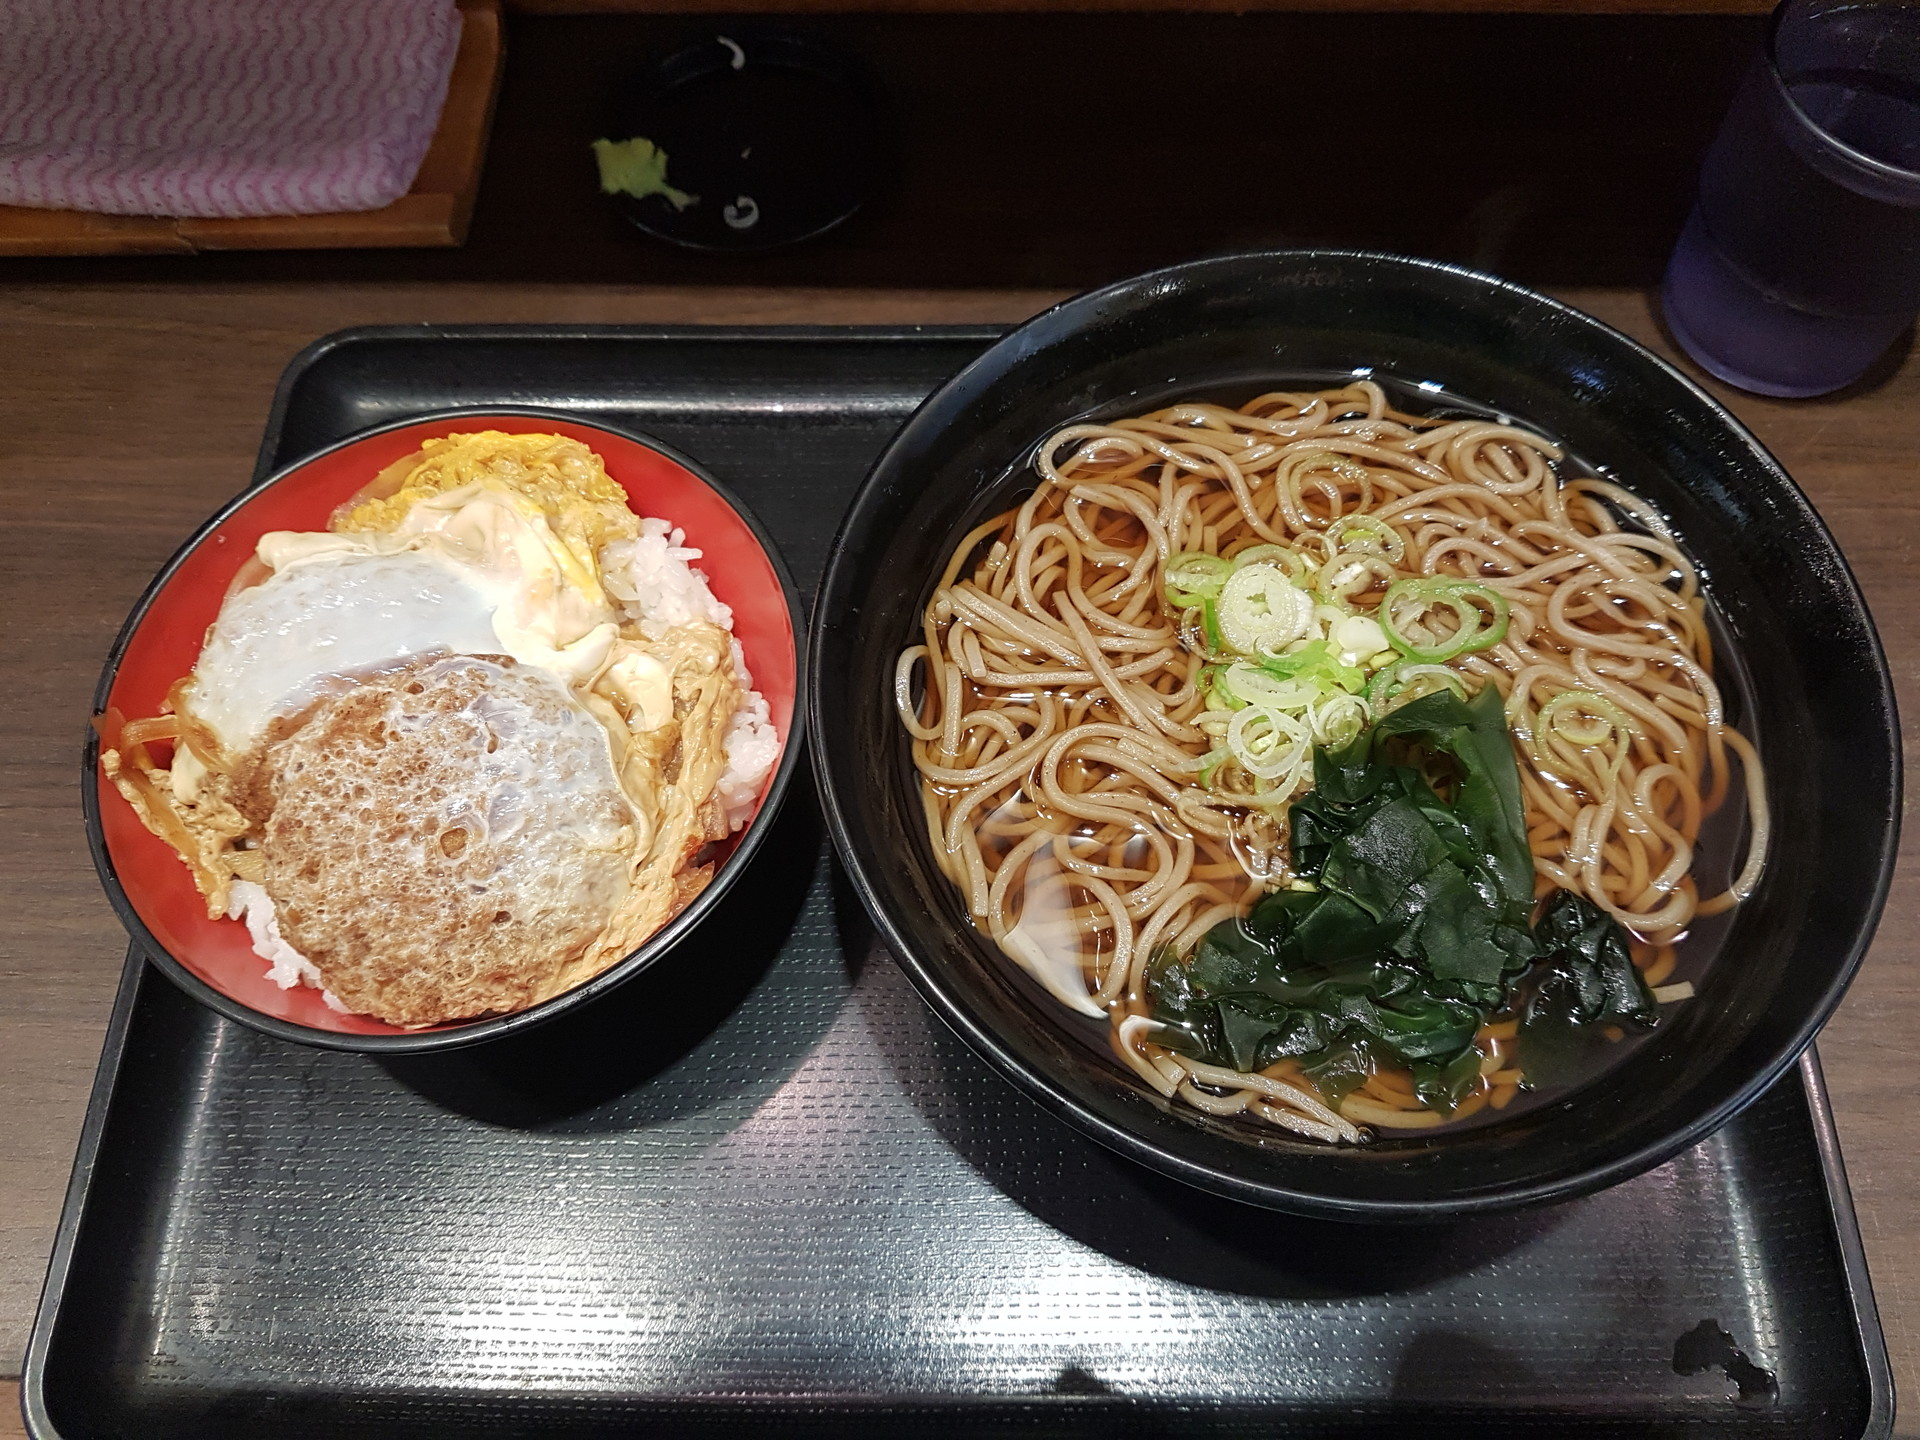 affordable-lunch-ginza-04c8ff9db7d8a017a